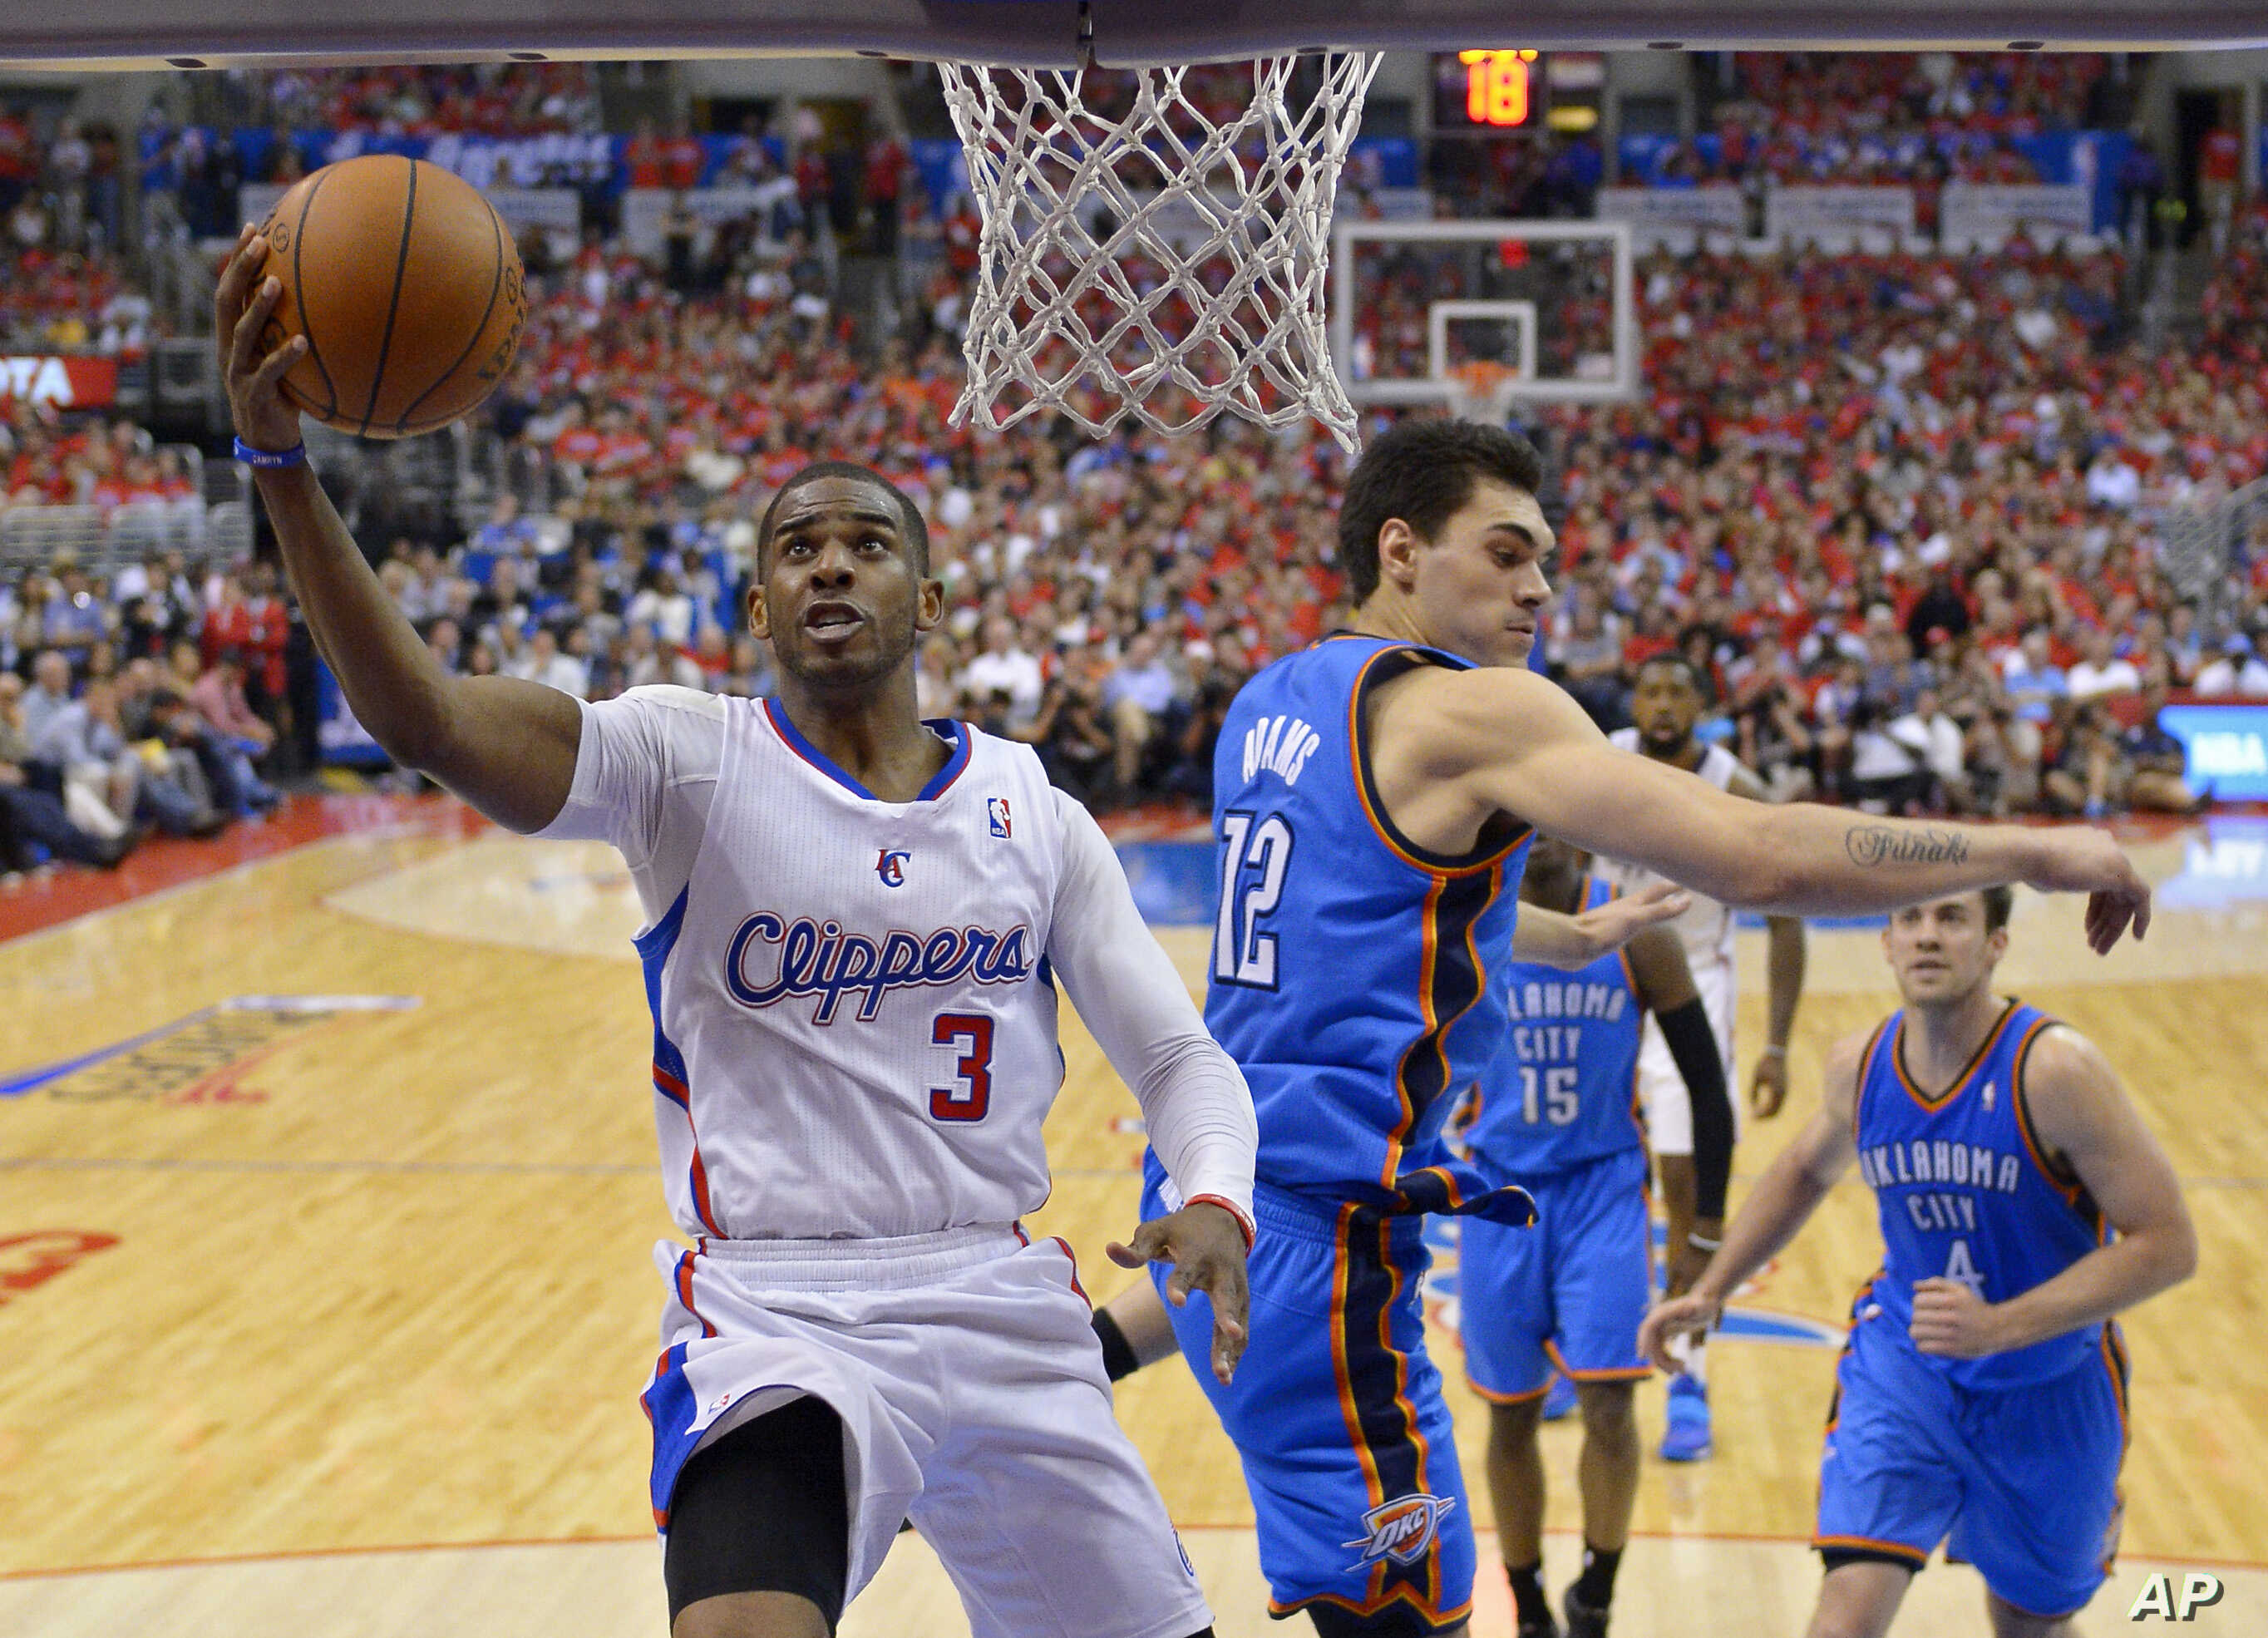 FILE: The Los Angeles Clippers' Chris Paul, left, puts up a shot against Oklahoma City Thunder center Steven Adams during Game 6 of the Western Conference semifinal NBA playoffs in Los Angeles, Calif., on May 15, 2014.